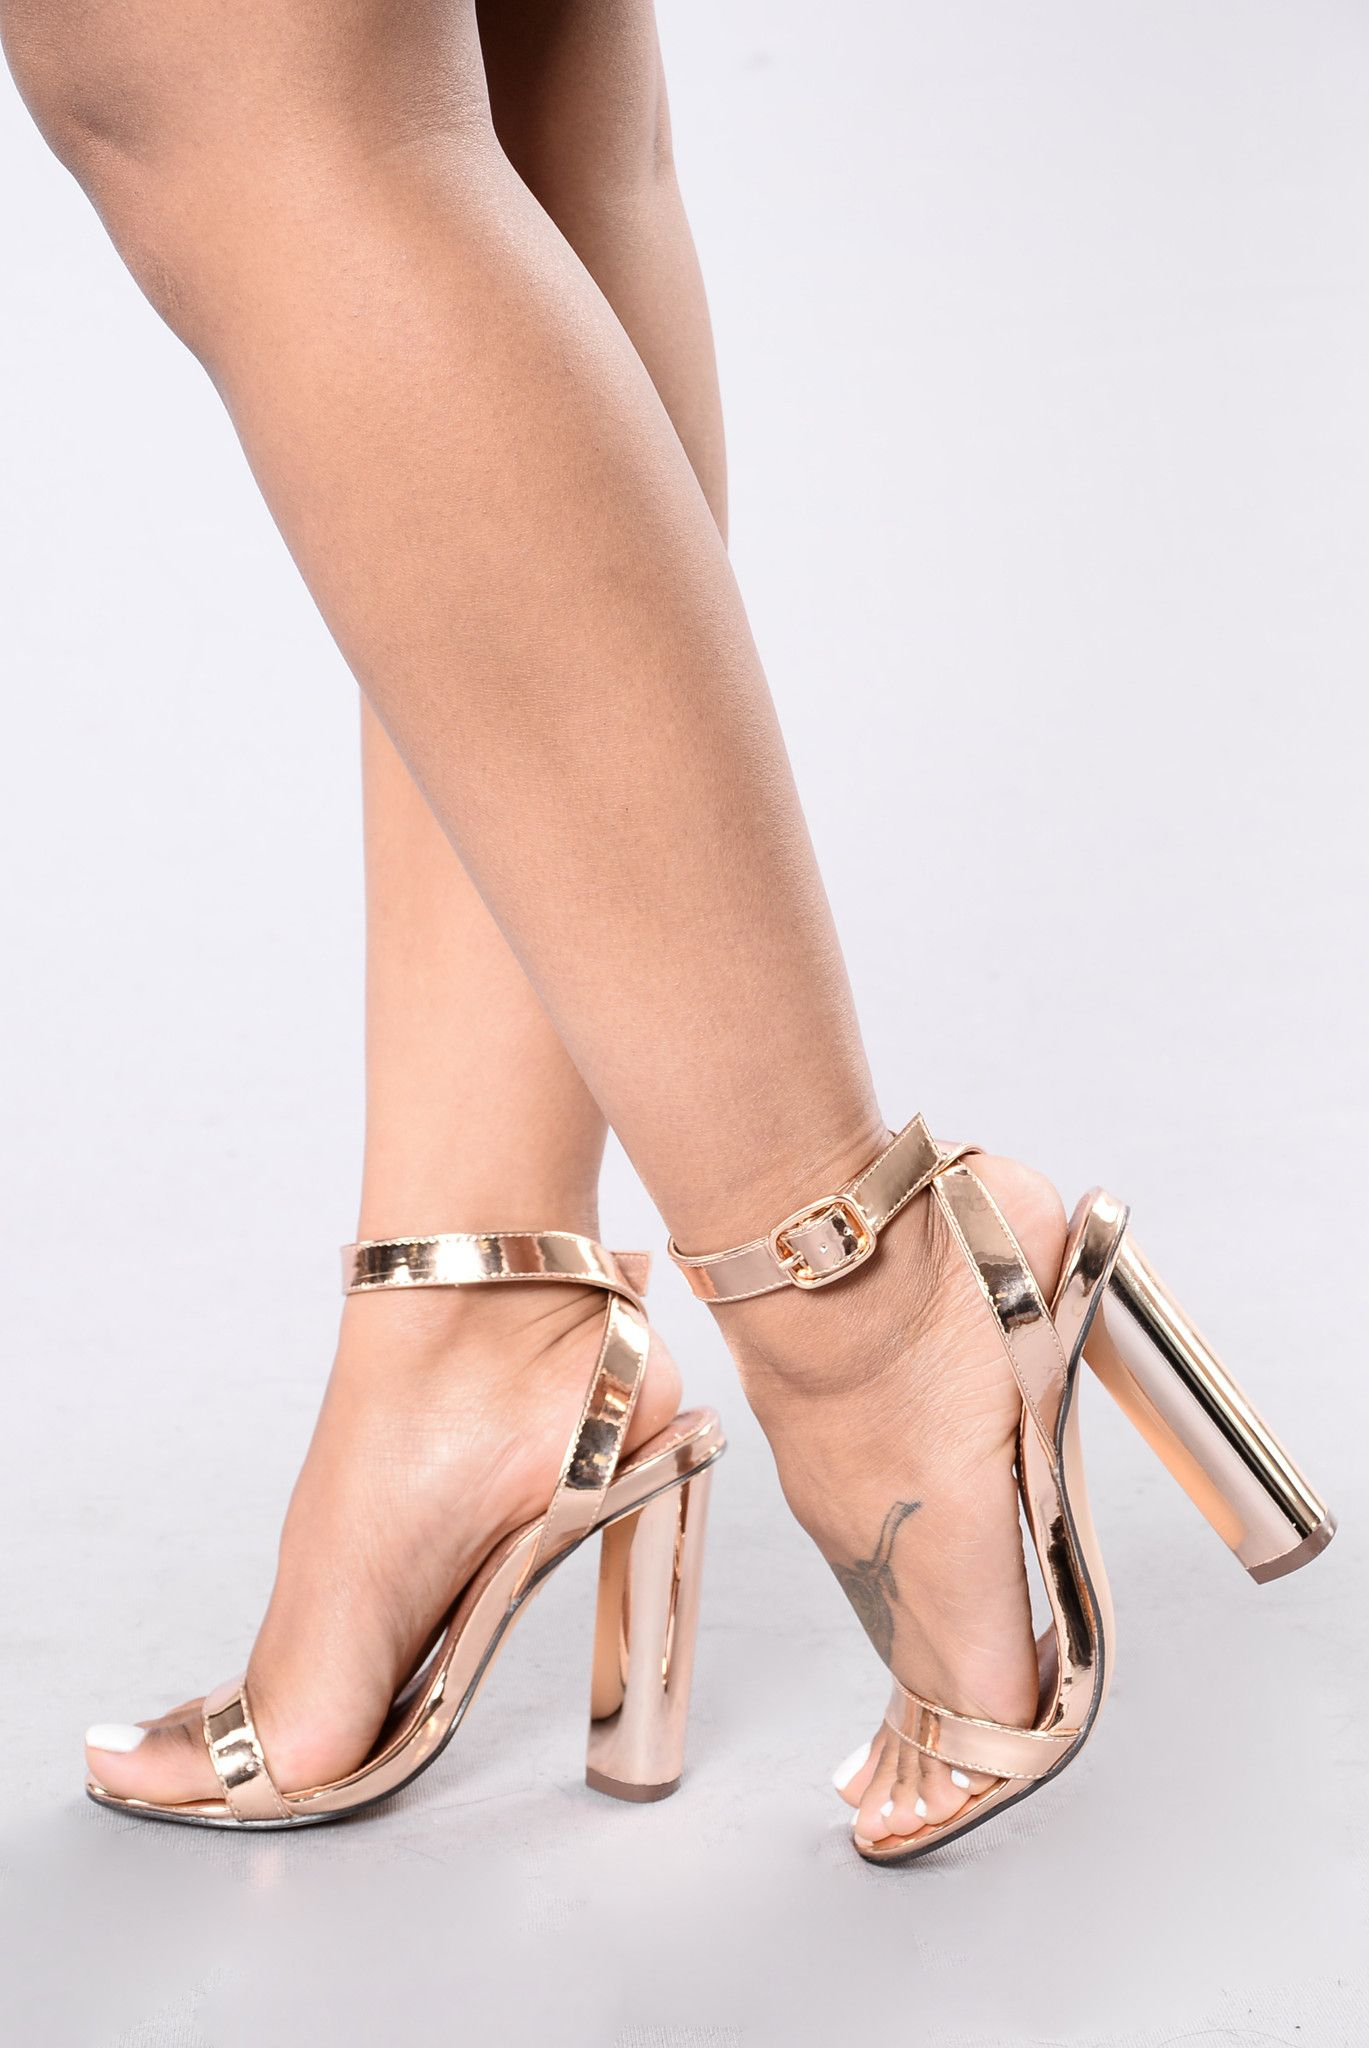 572c0dea1431 Available in Rose Gold and Silver Single Sole Heel Adjustable Buckle  Metallic Round Heel Patent Leather Upper